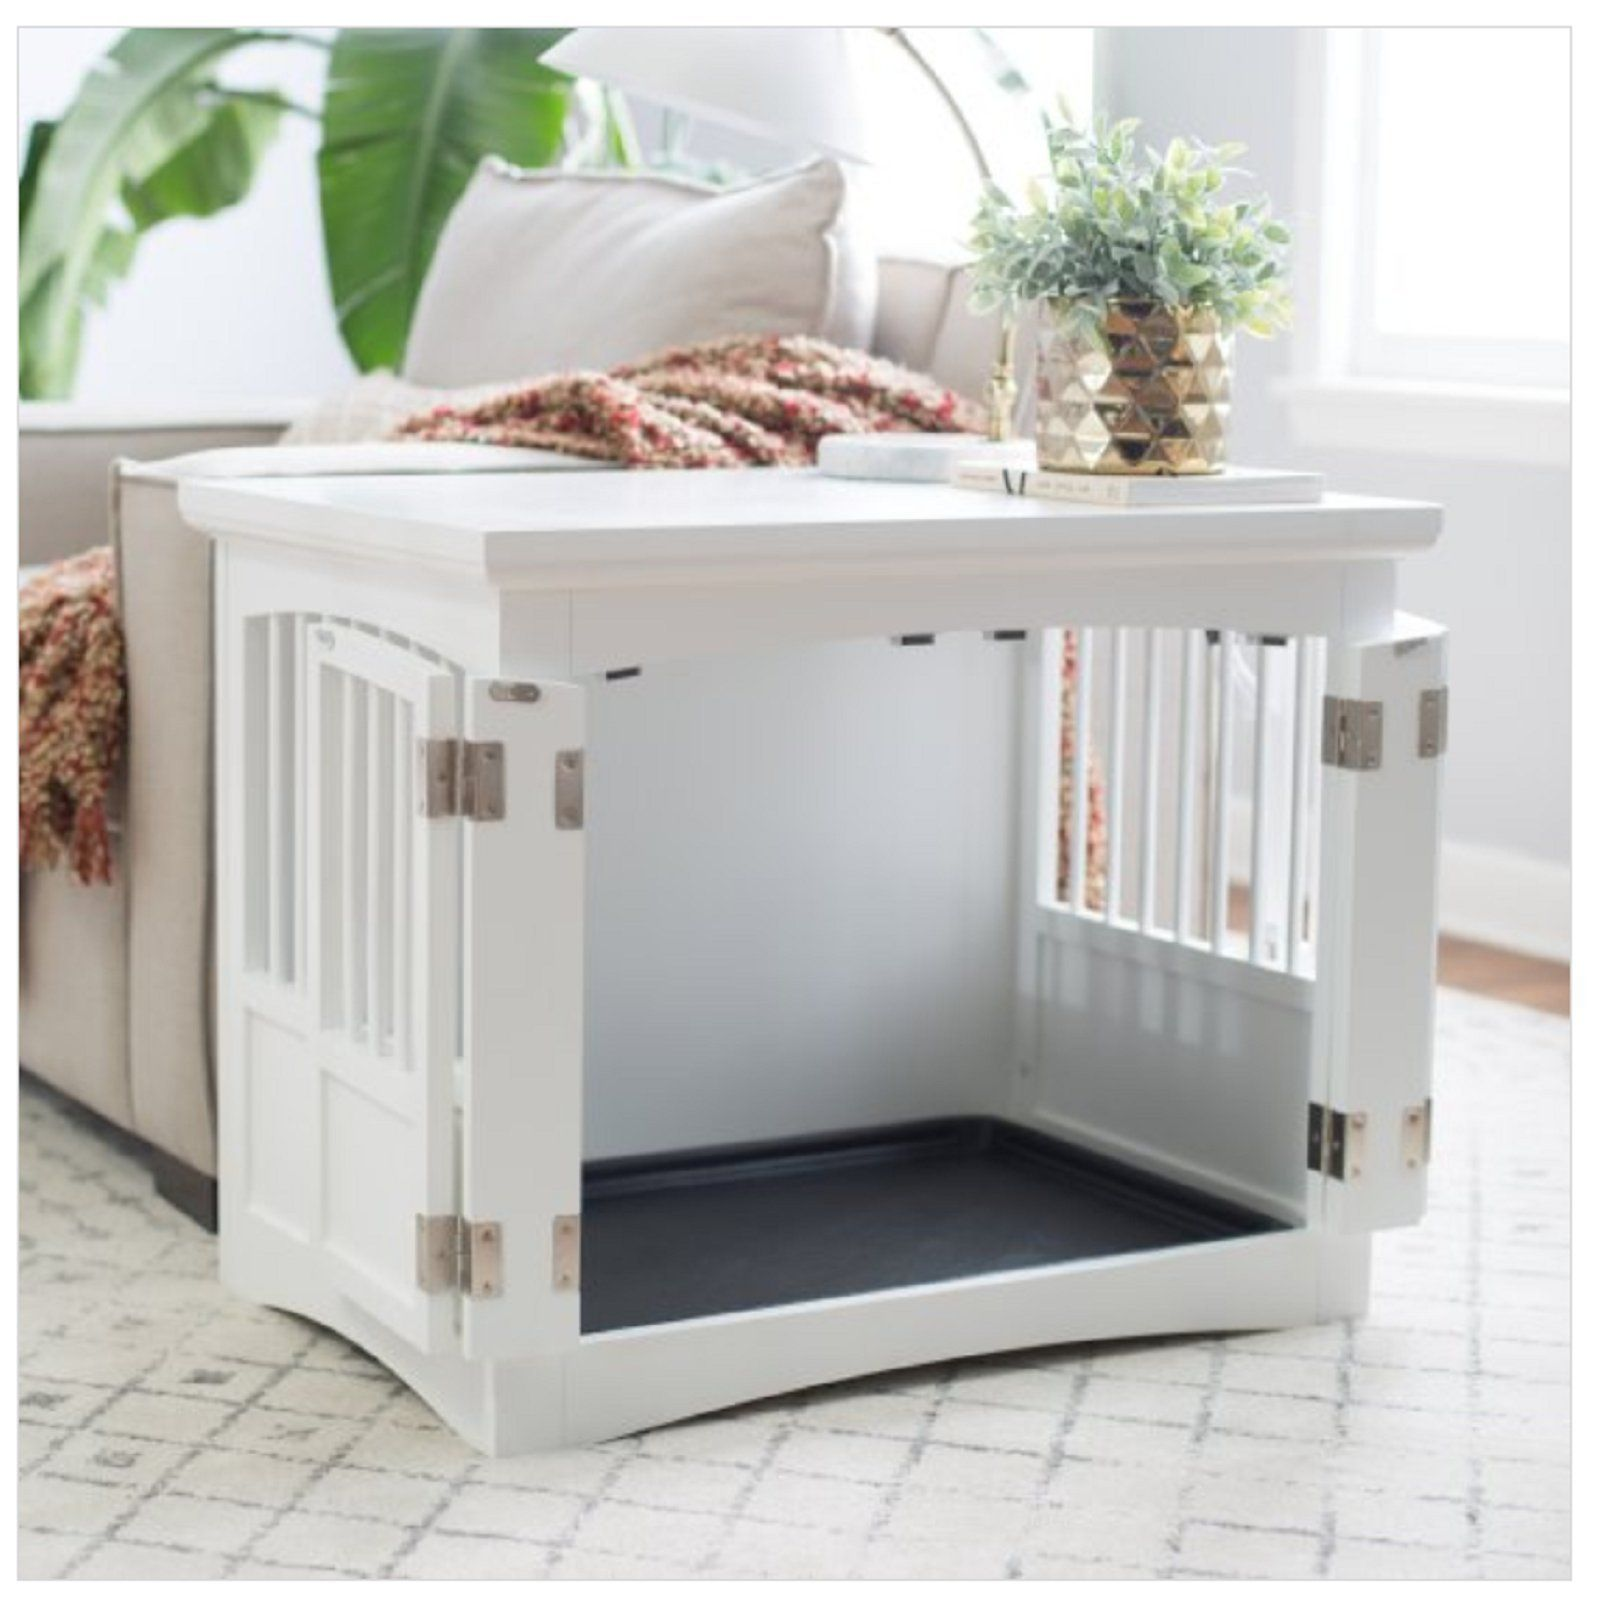 Hot Sale Indoor Dog Crate End Table 2 Door White Wood Bed Kennel Furniture Bedroom Puppy You Can Find M Crate Furniture Dog Crate Furniture Dog Crate Table Wooden dog crate end tables